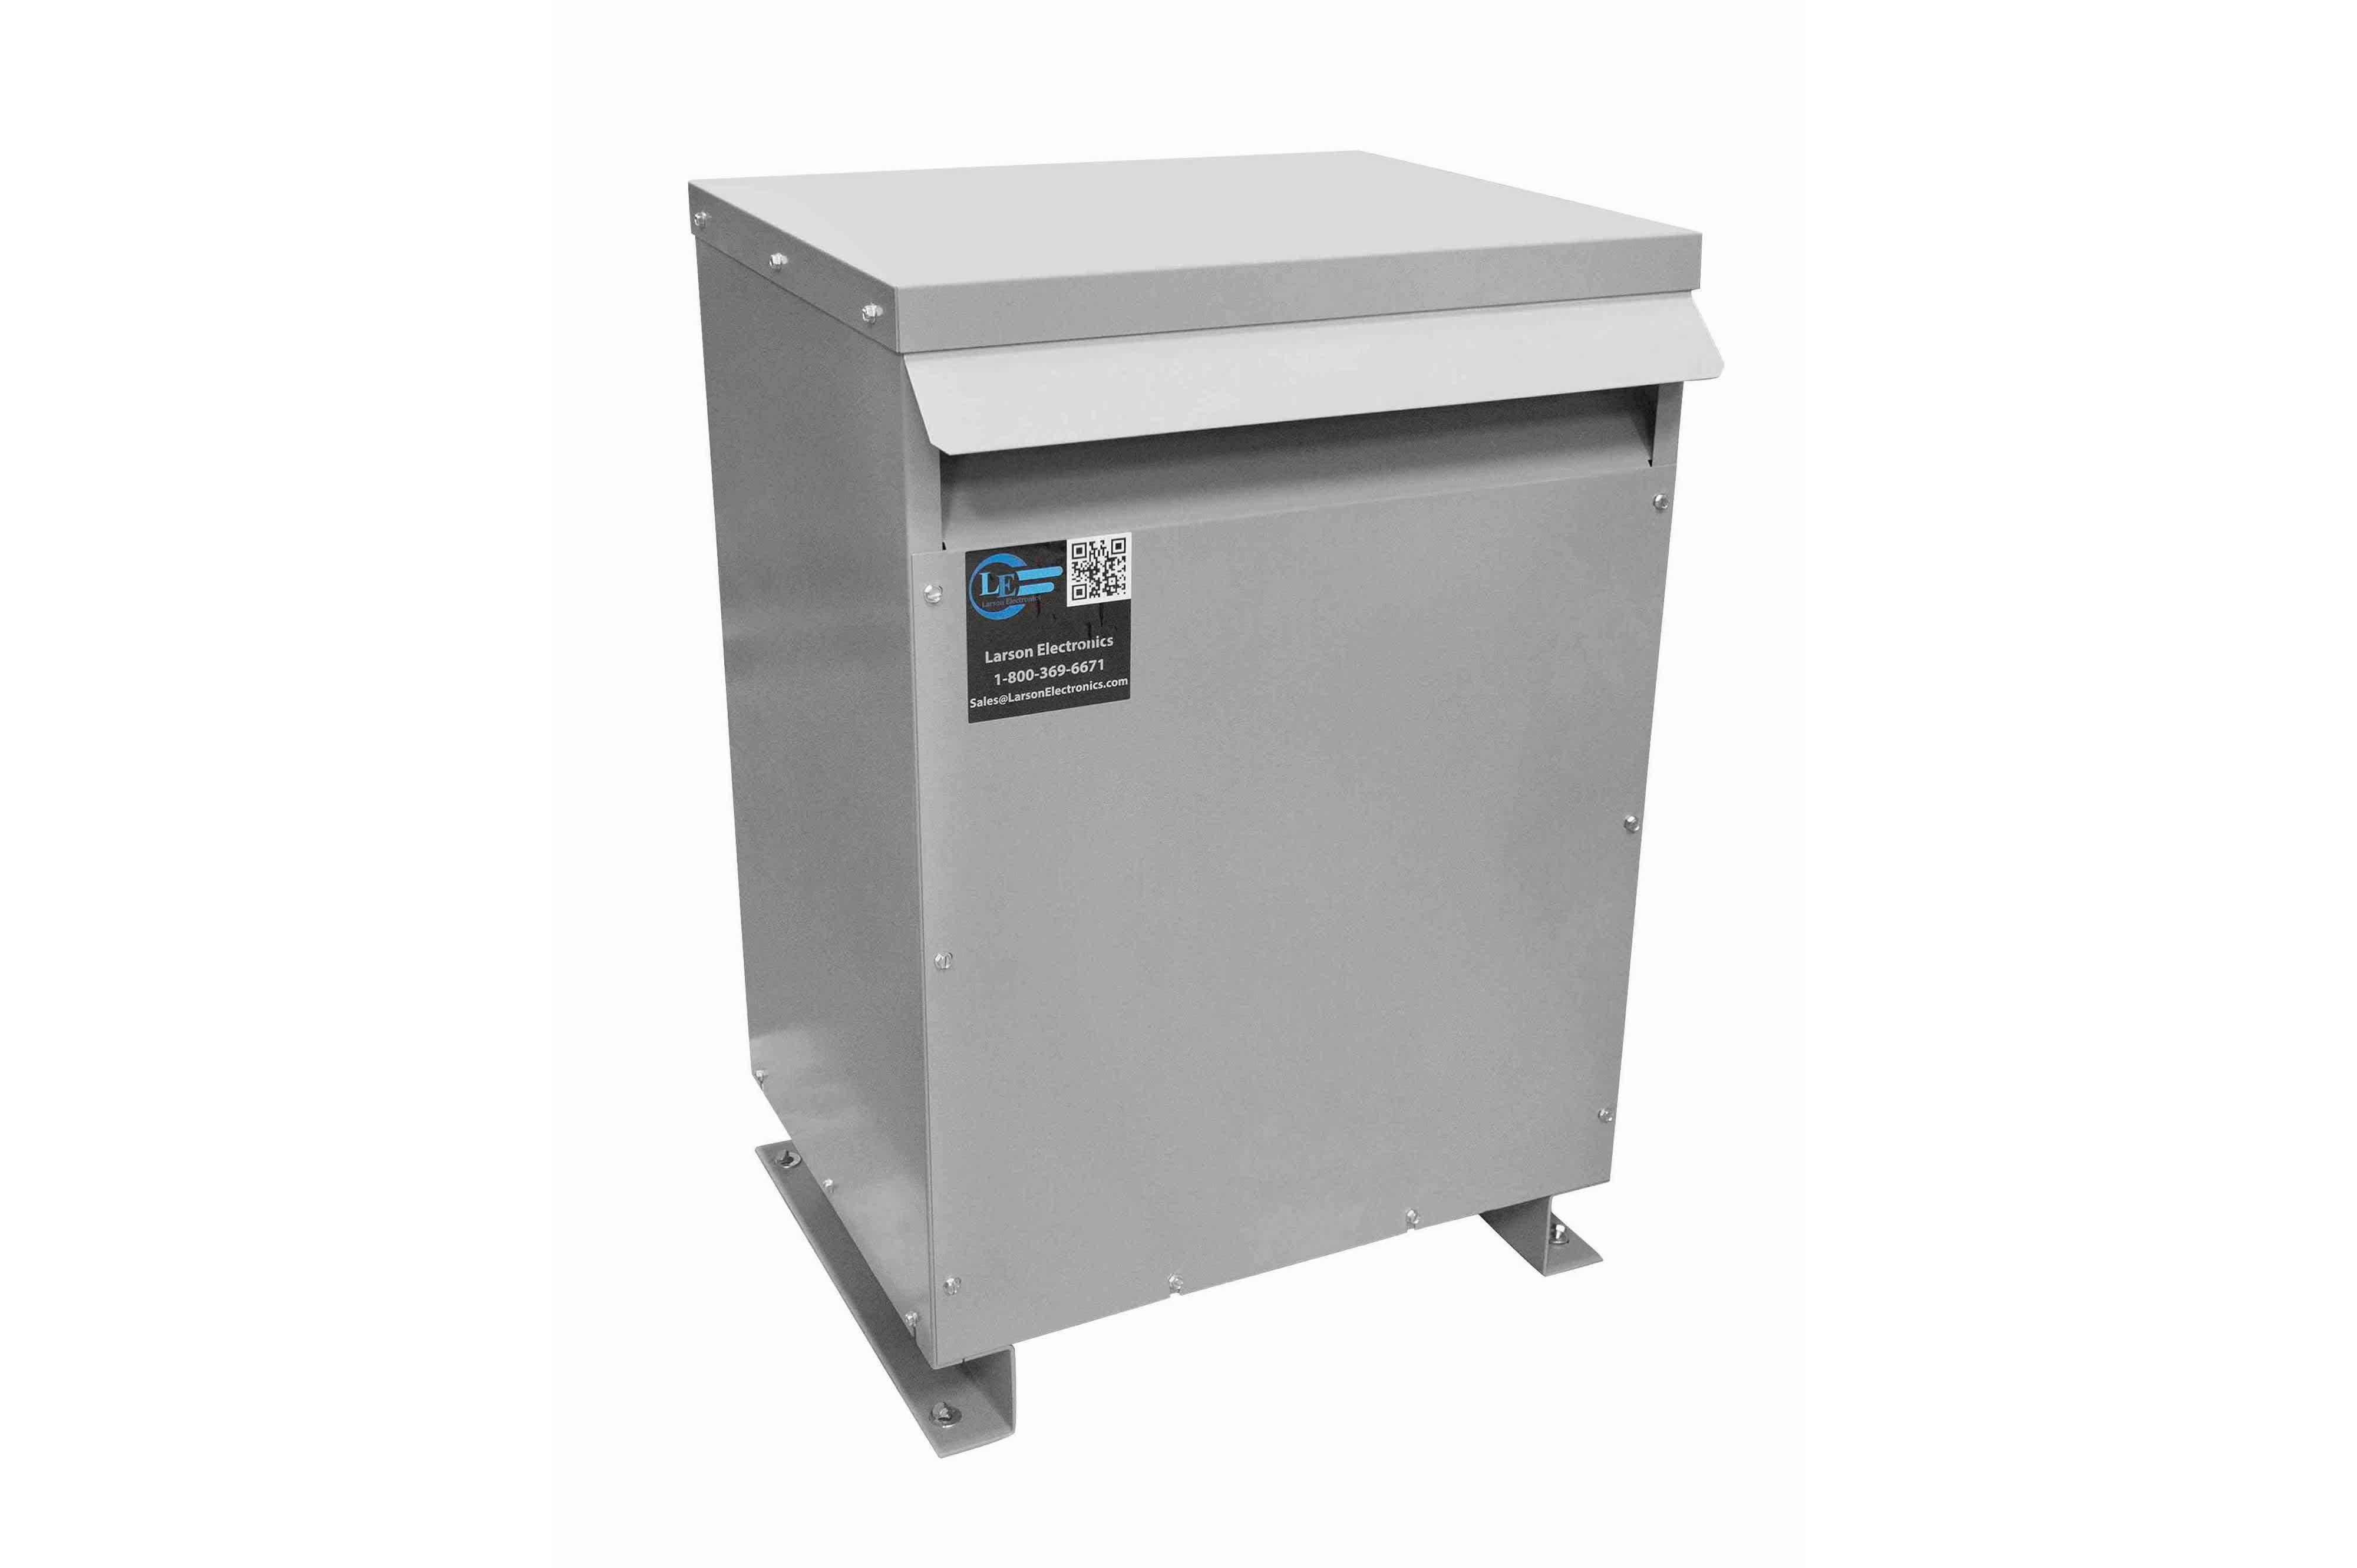 26 kVA 3PH Isolation Transformer, 230V Wye Primary, 480Y/277 Wye-N Secondary, N3R, Ventilated, 60 Hz